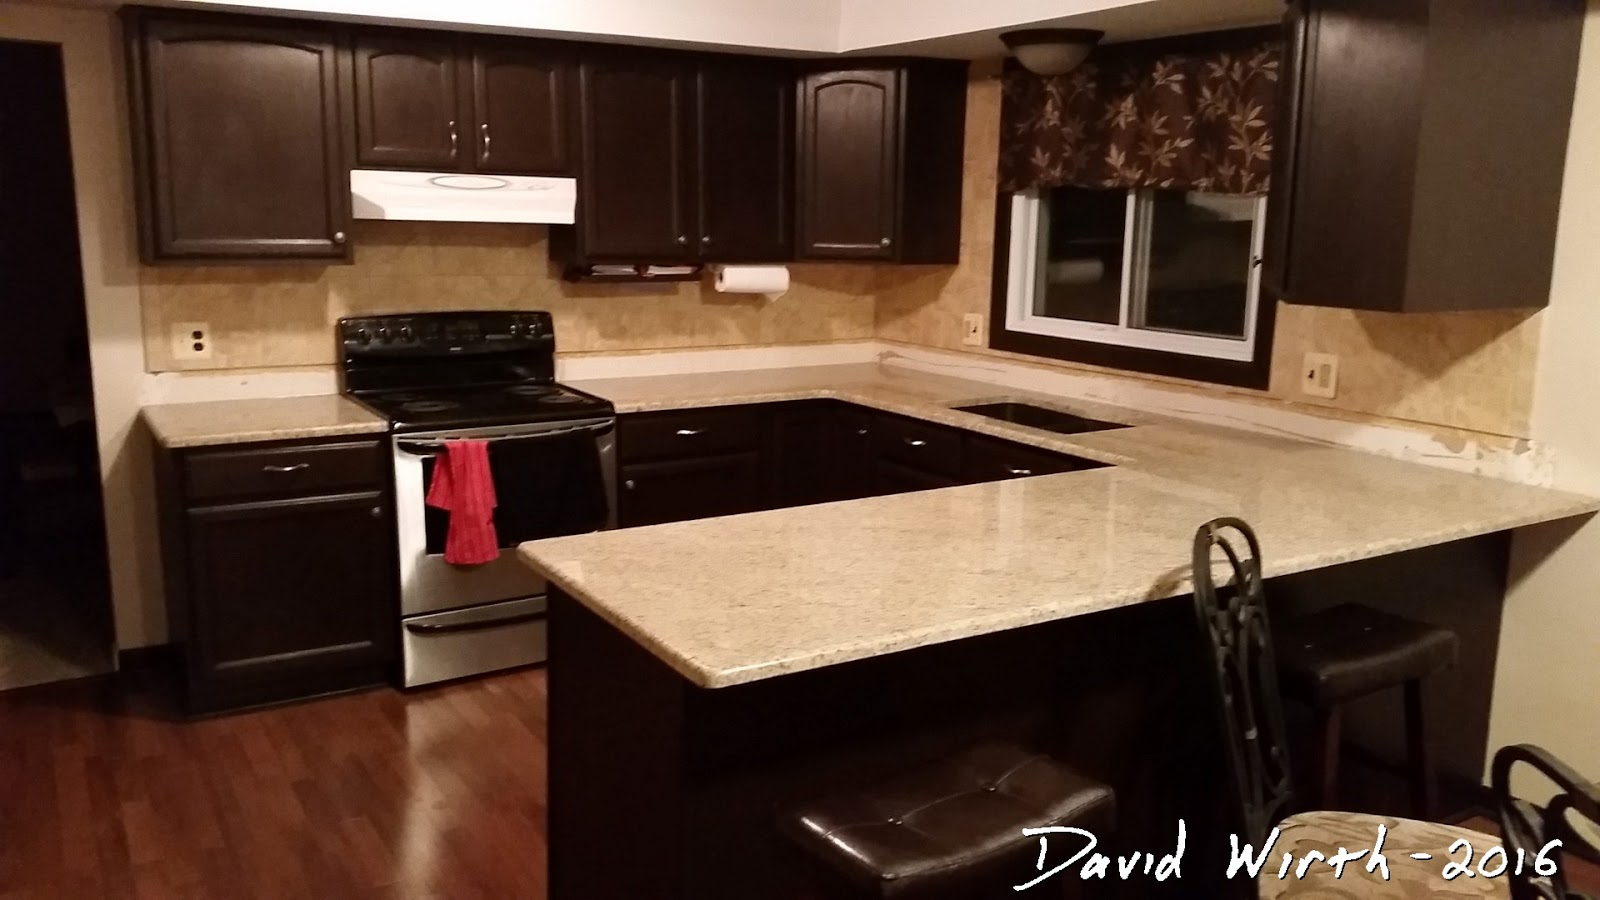 Kitchen Cabinets - Easy Refinish and Remodel